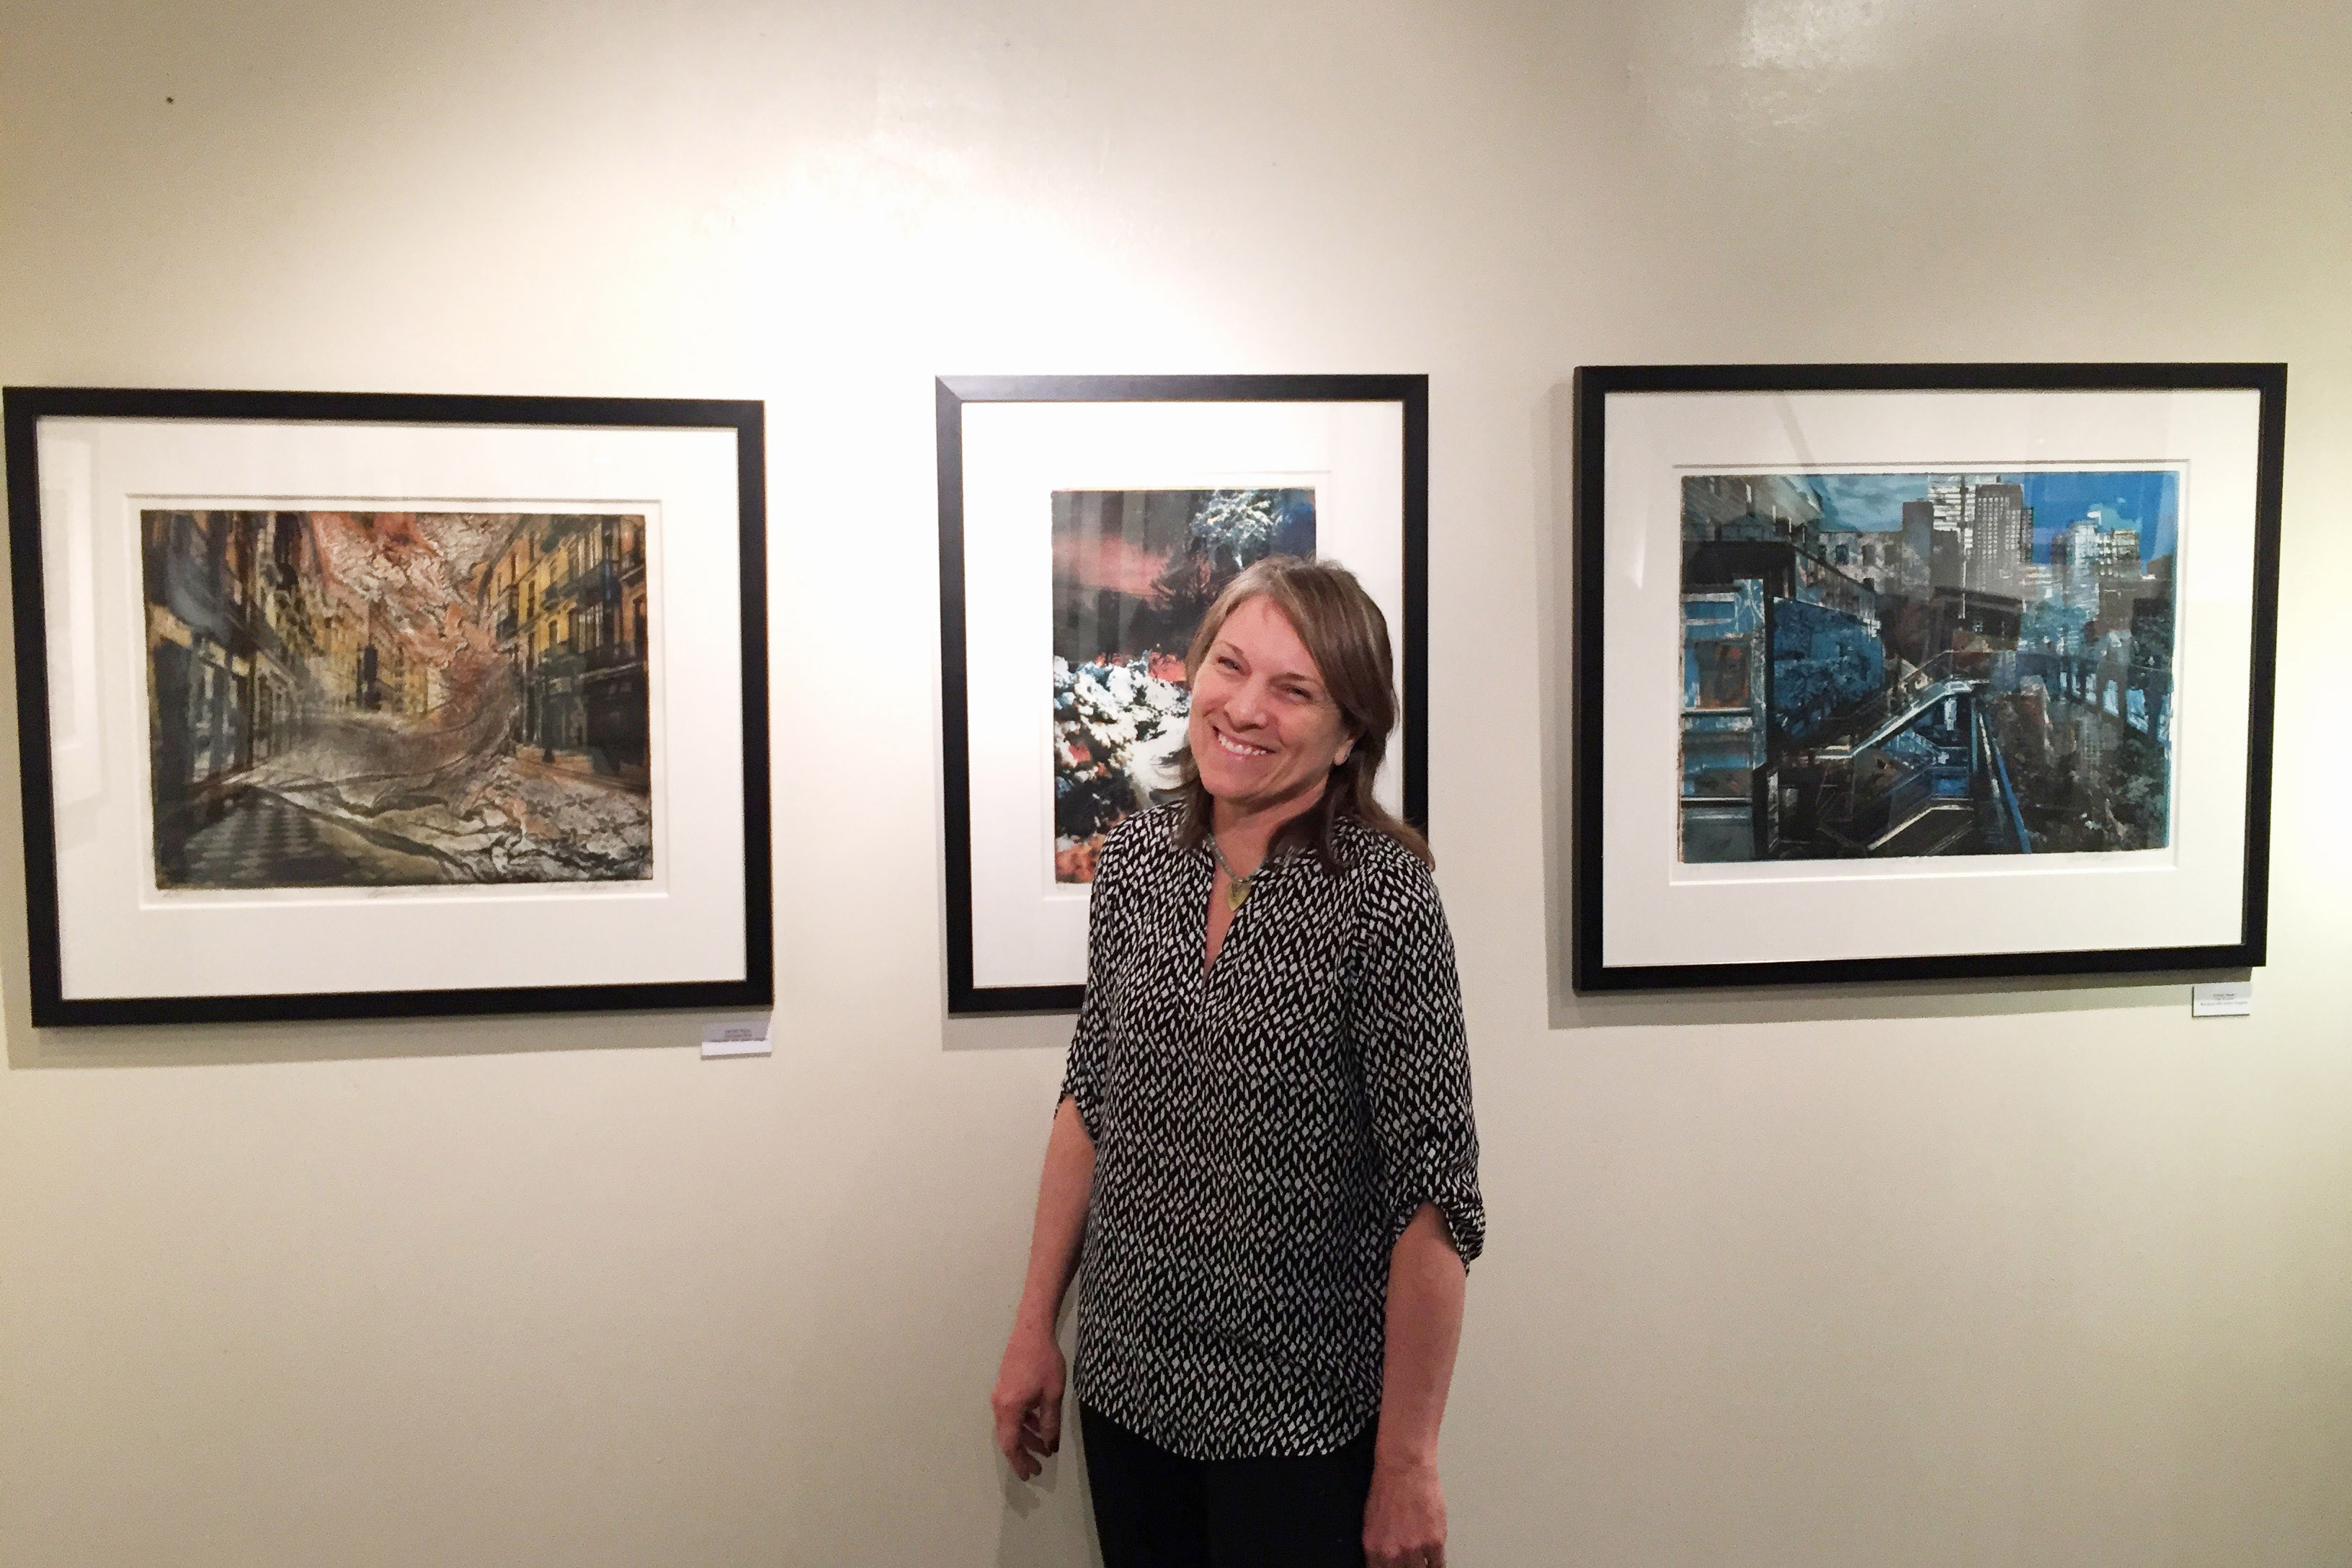 4bd87aa1fe21a8dd4818_Denise_Moser_hanging_her_art_in_the_show.jpg